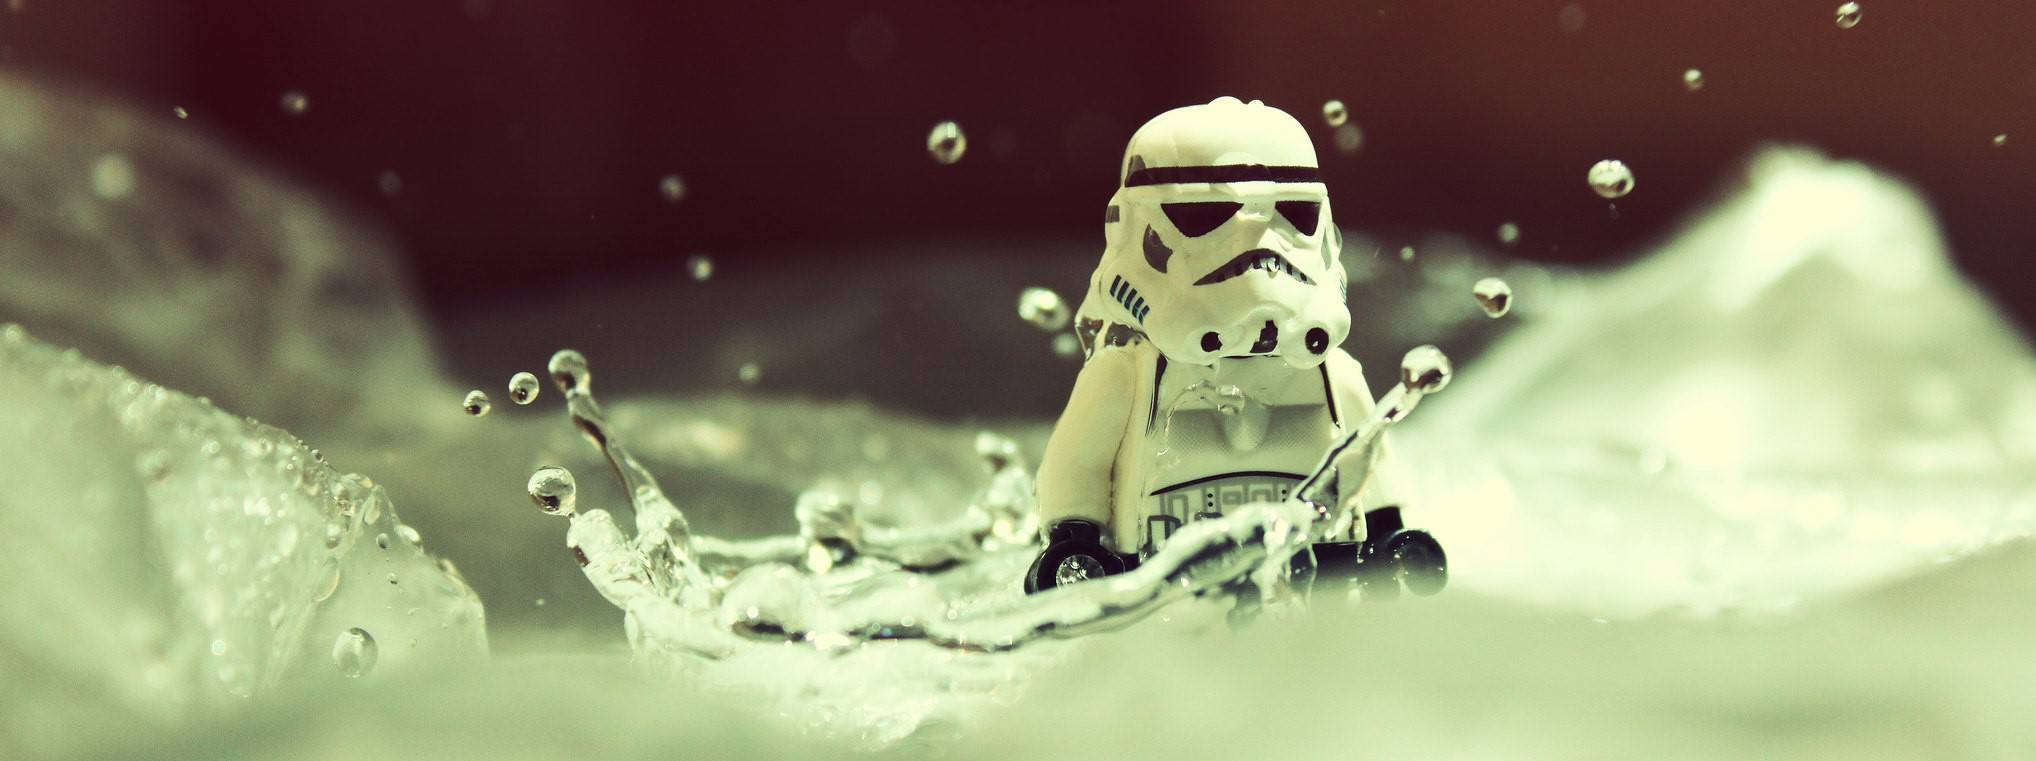 A Stormtrooper in water, which is way too much water for him to drink.